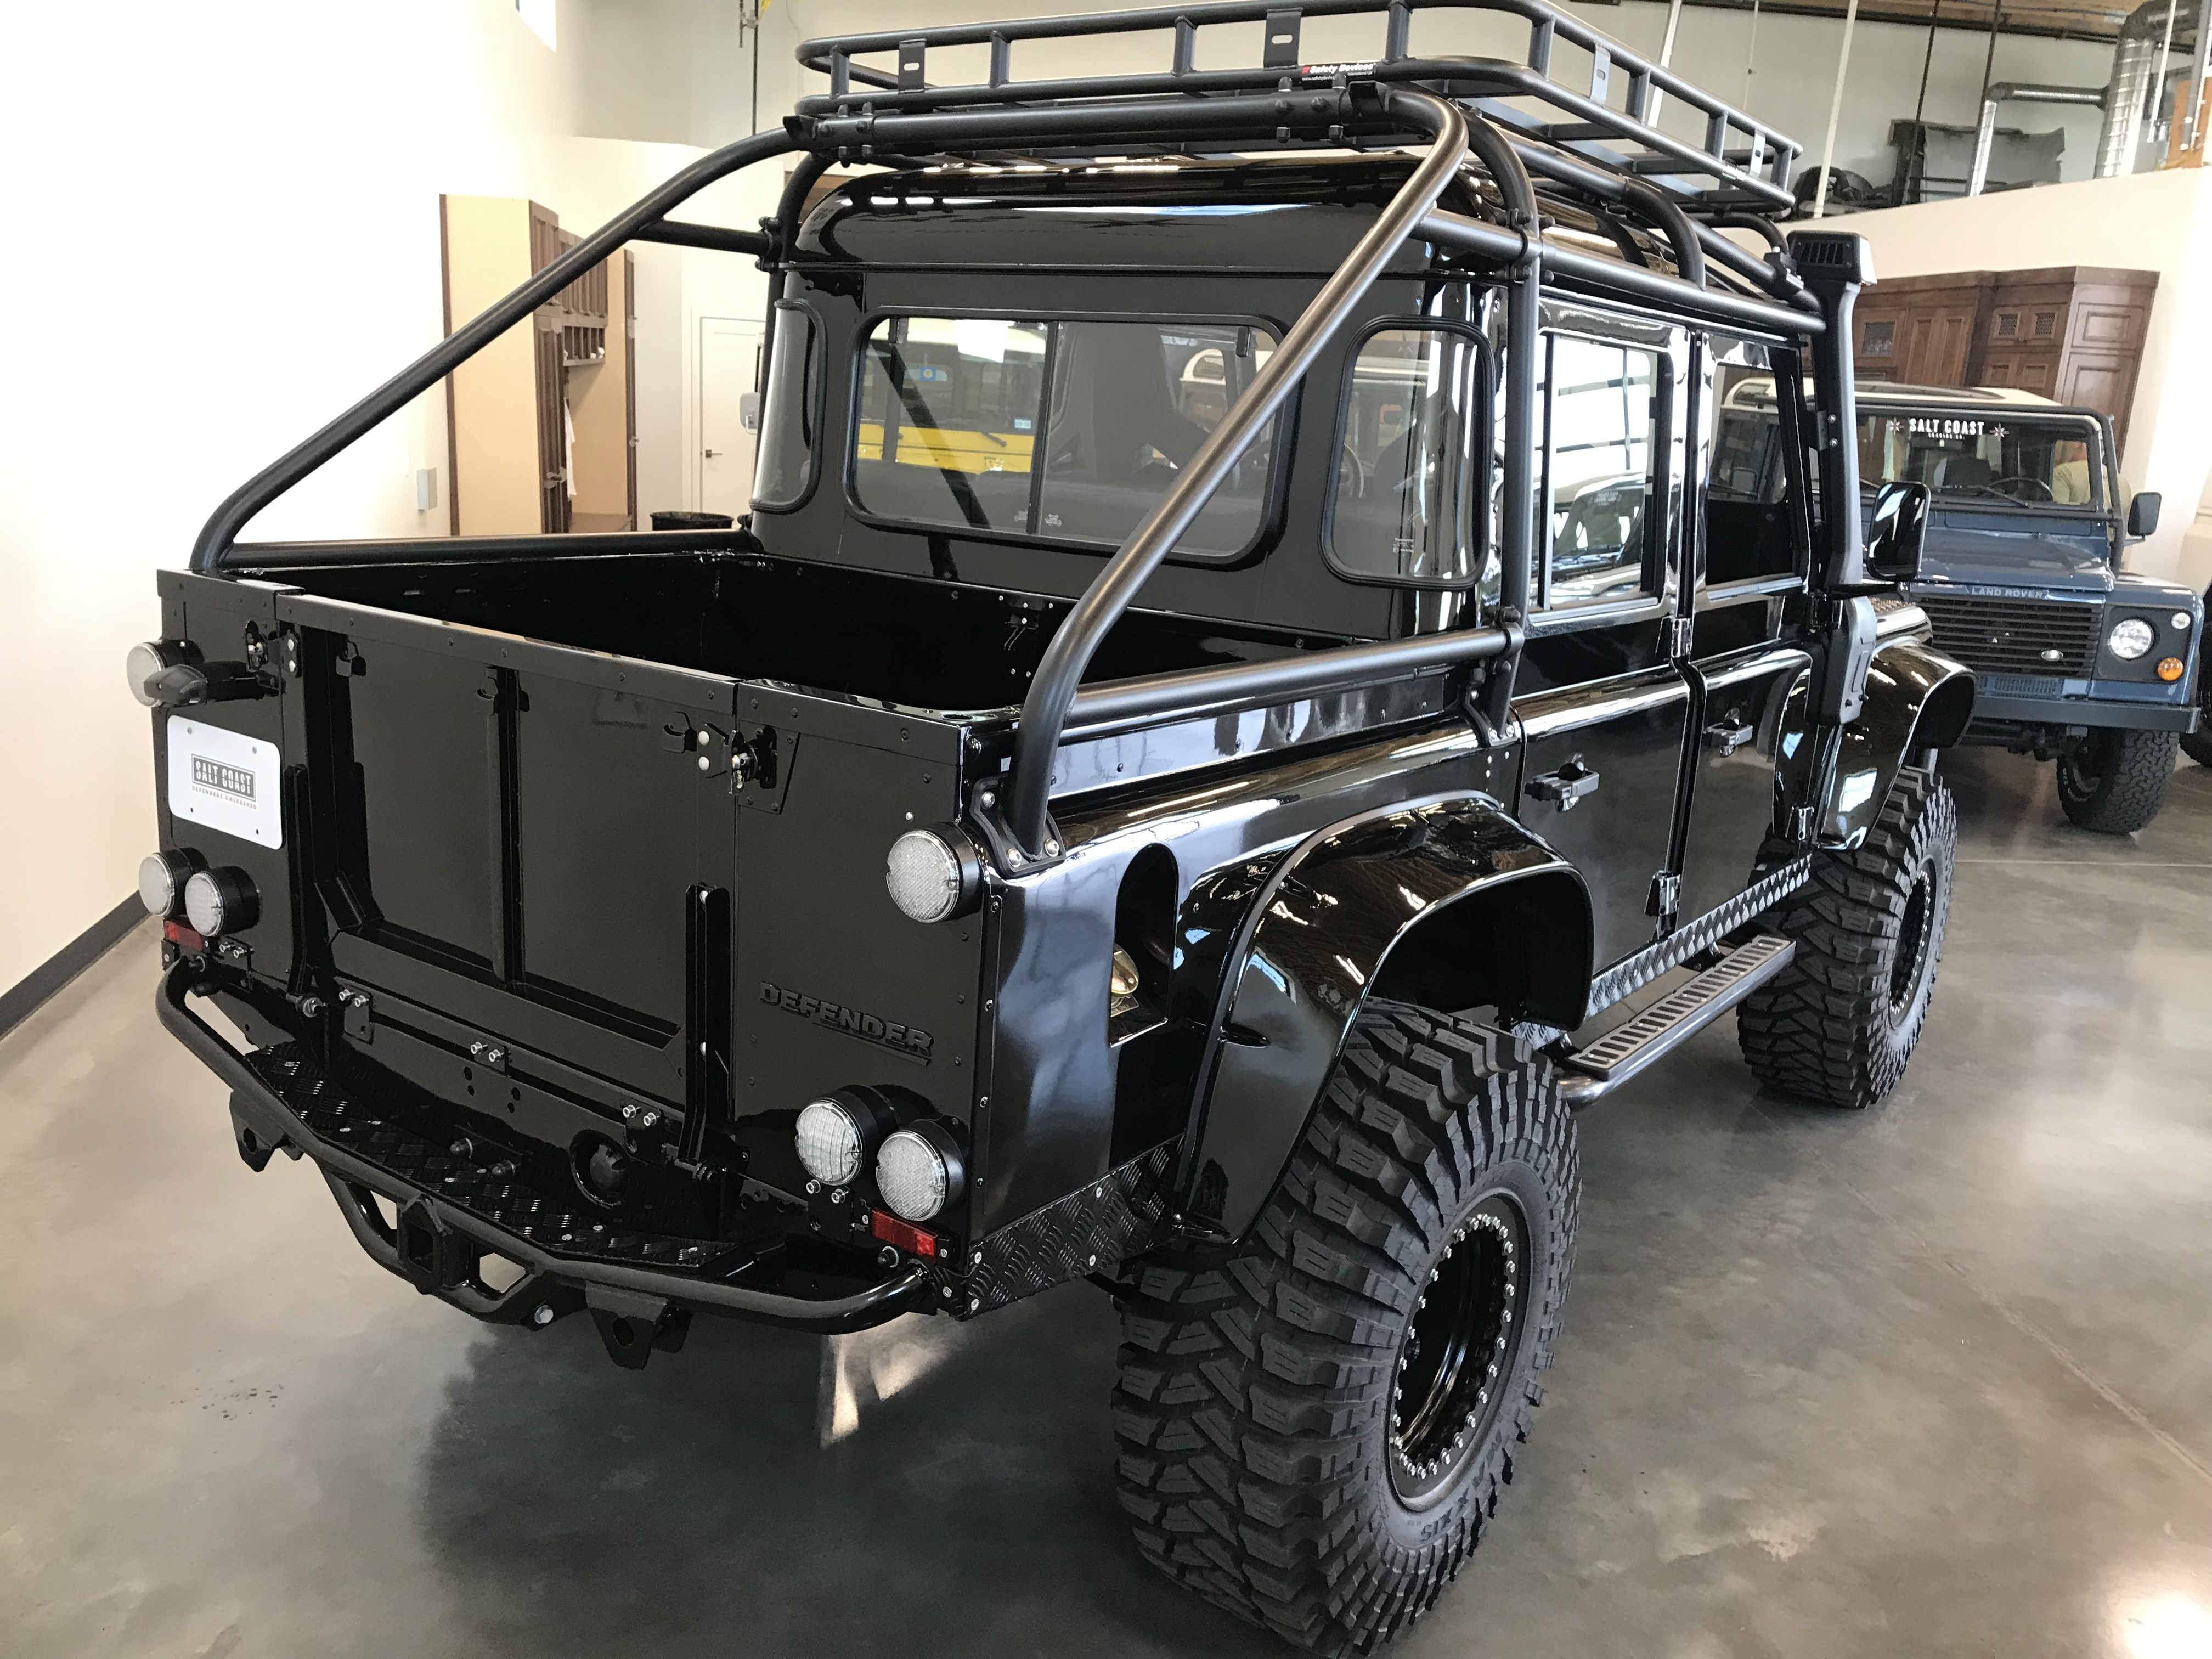 Pre-Owned 1986 Land Rover Defender 110